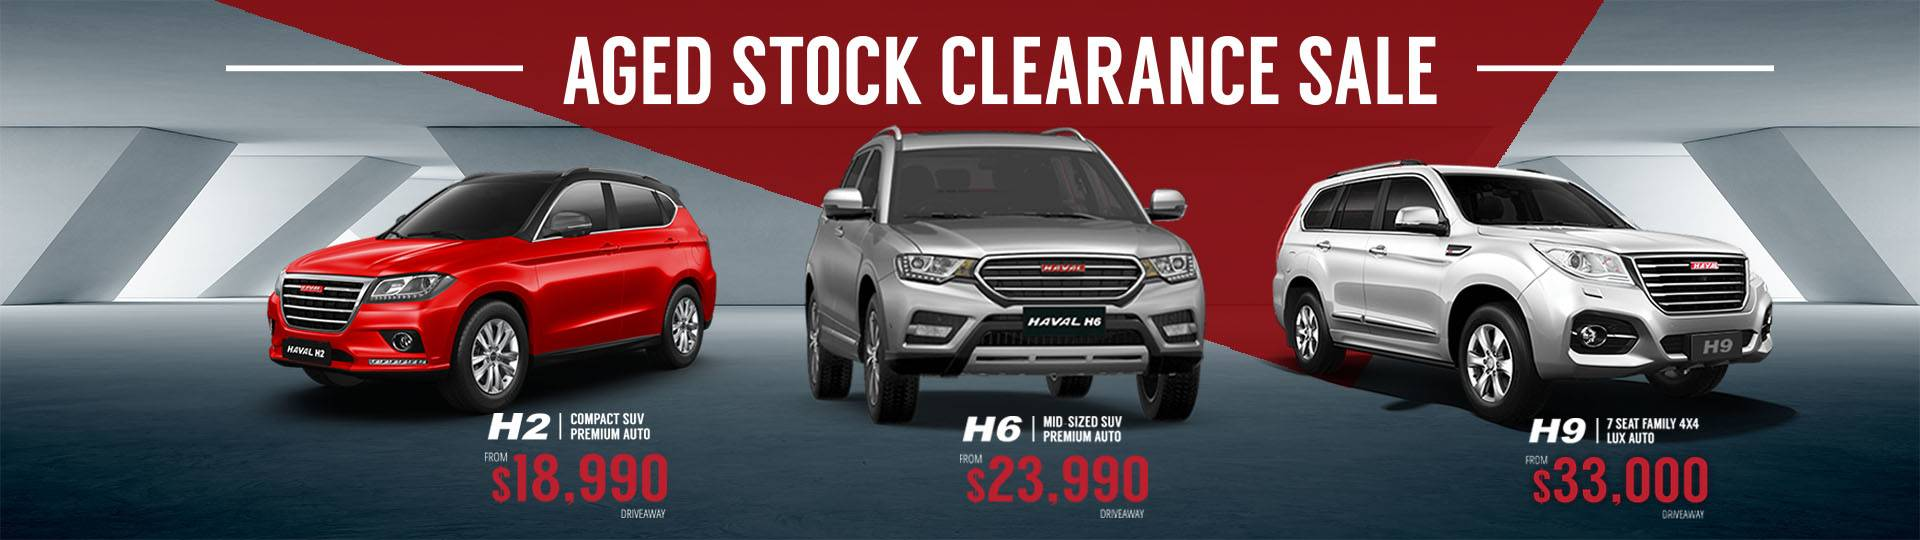 Hunter Haval - Aged Stock Clearance Sale